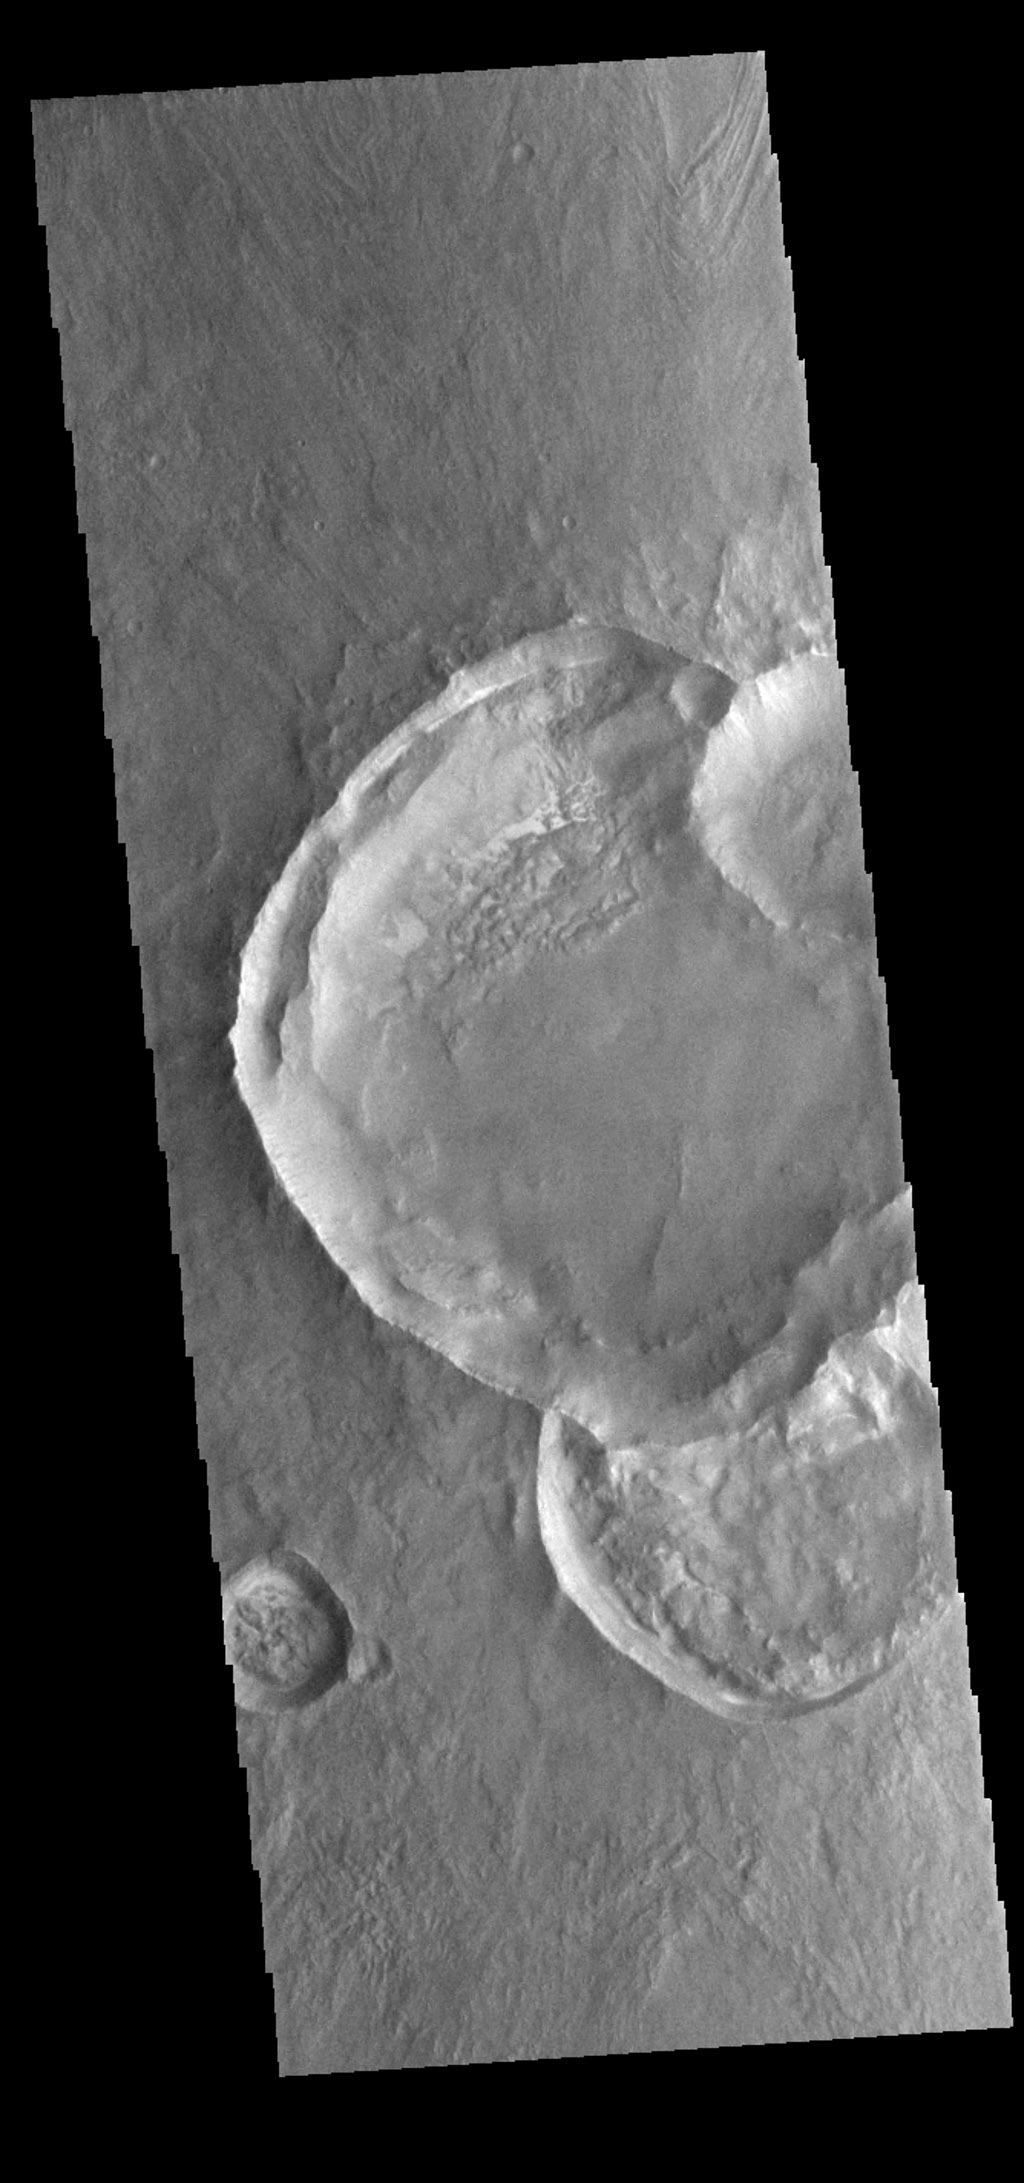 This image from NASA's 2001 Mars Odyssey spacecraft is of a group of craters in Solis Planum. Because three of the craters are overlapping it is possible to determine the order in which those three were created.